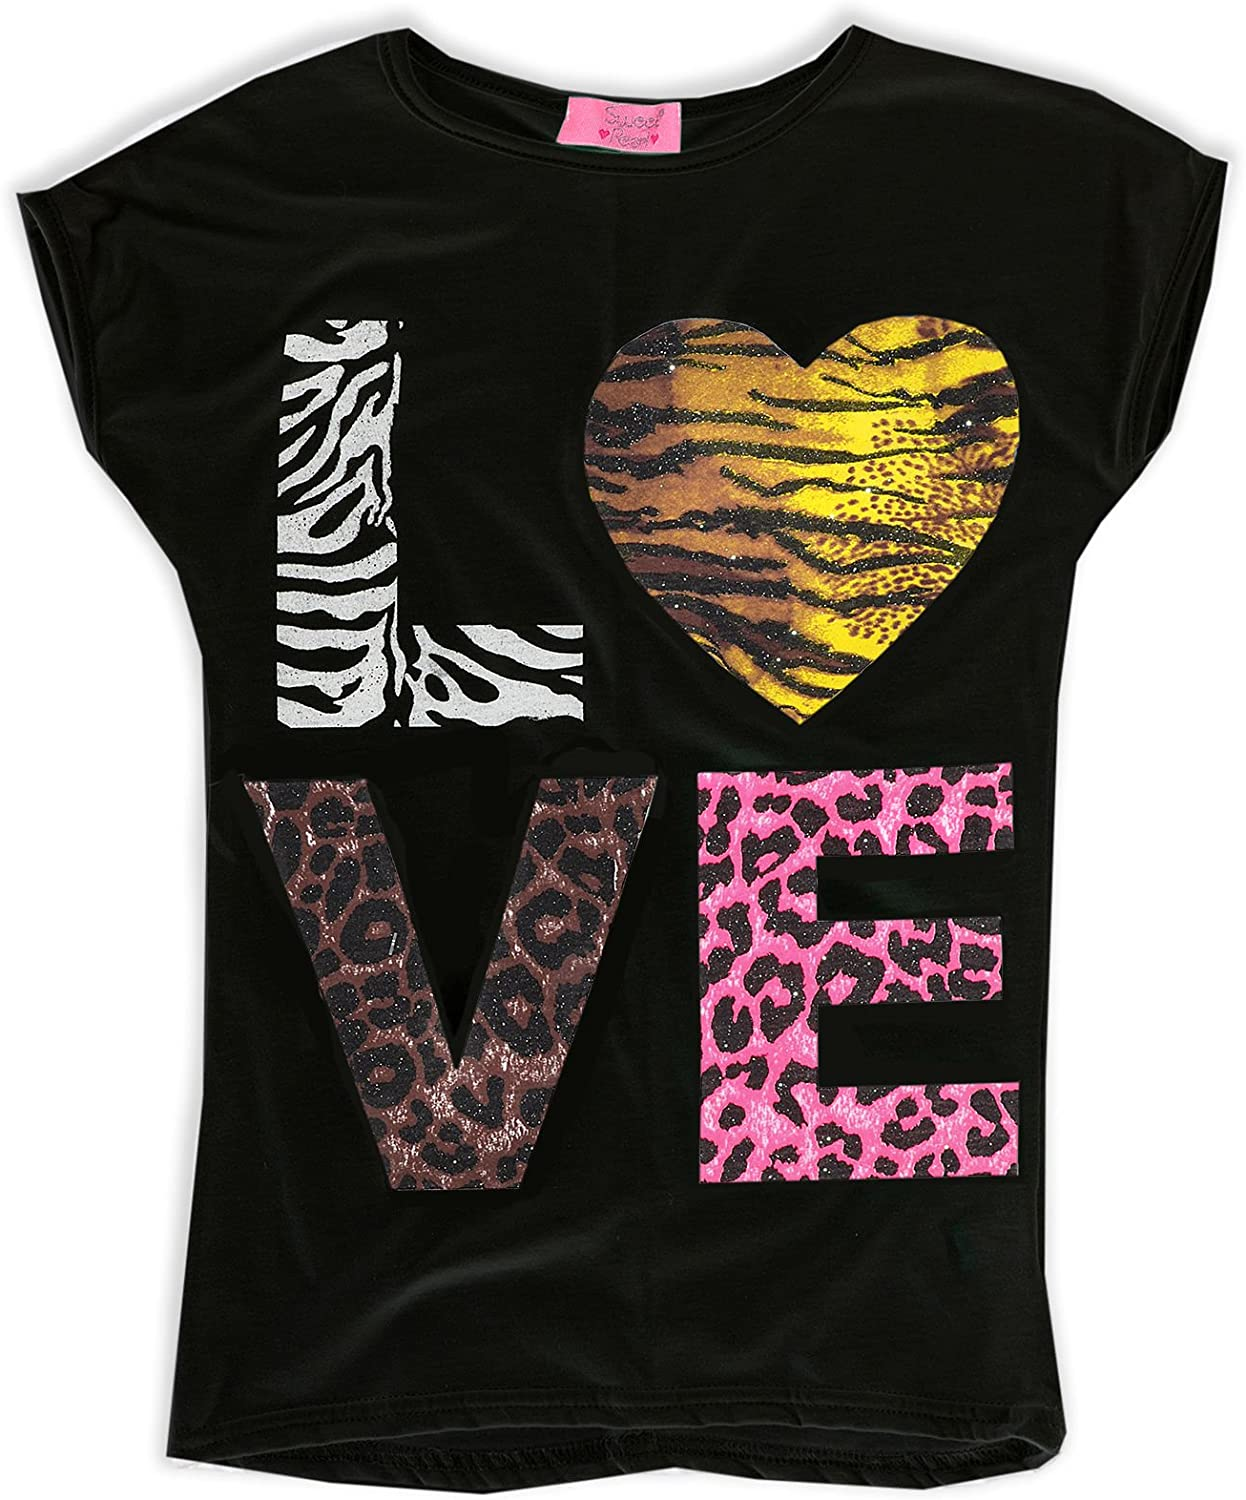 JollyRascals Girls Love T-Shirt White Black Summer Top Kids New Outfit Ages 5 6 7 8 9 10 11 12 13 Years